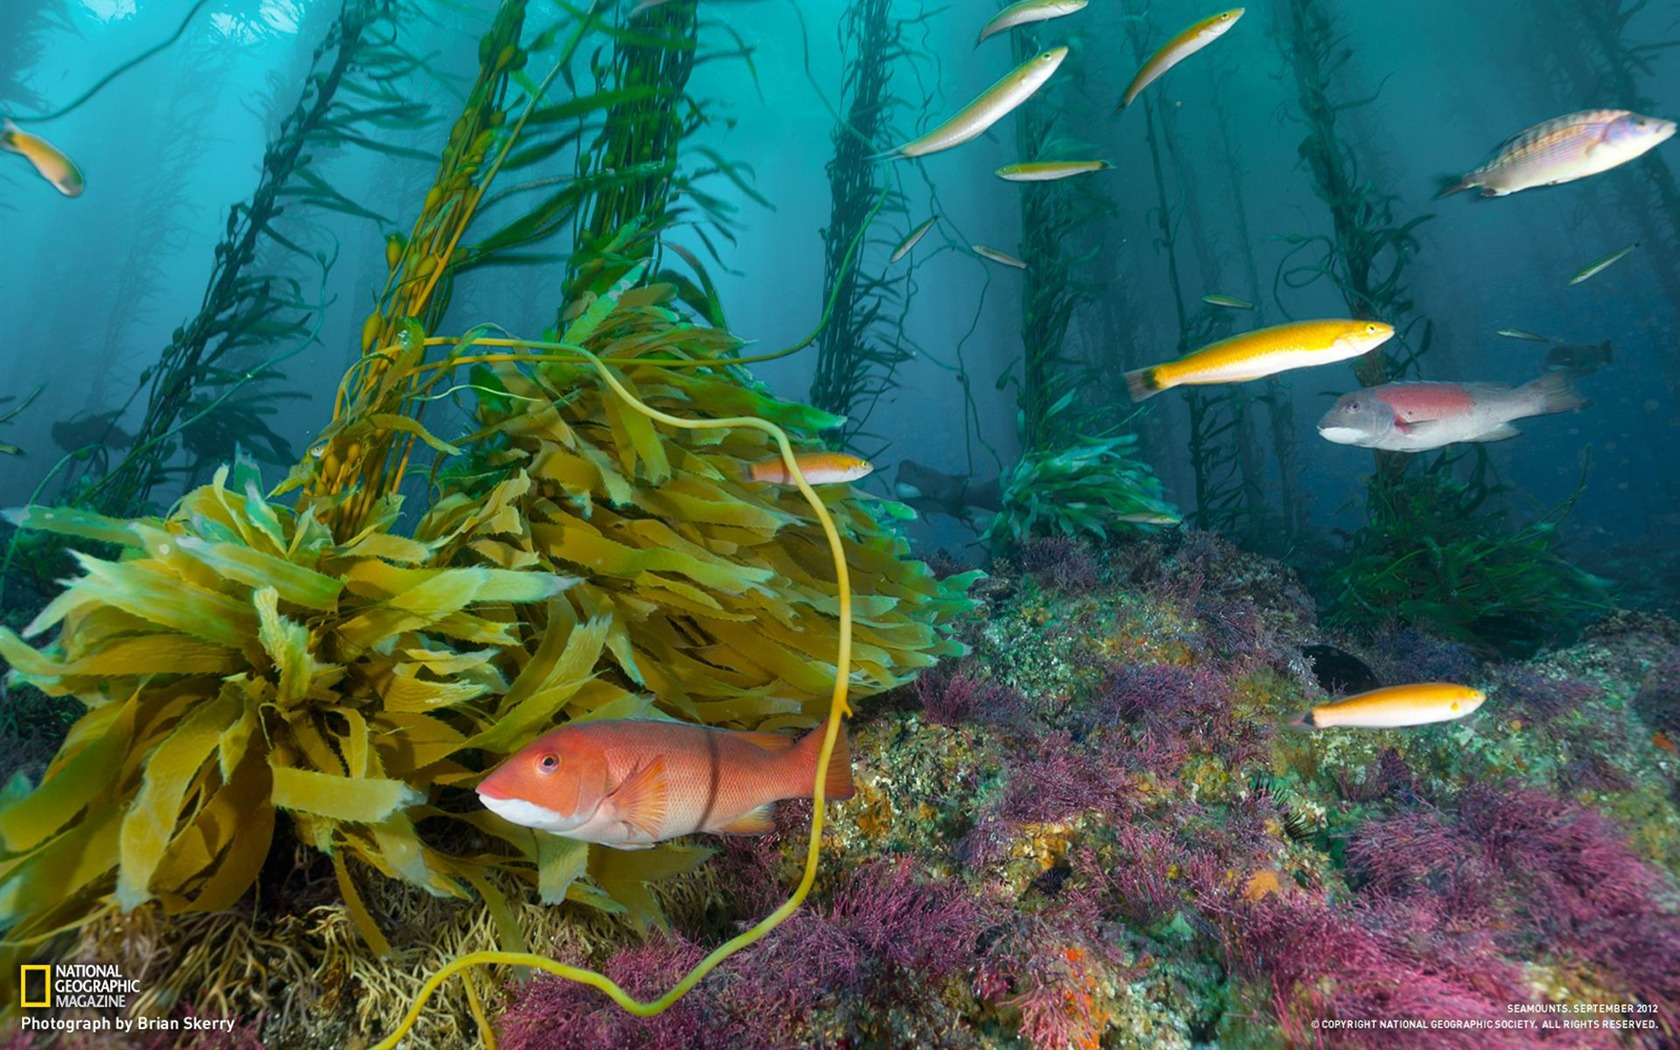 Wallpaper download national geographic - Seamount Cortes Bank National Geographic Wallpaper 1680x1050 Wallpaper Download